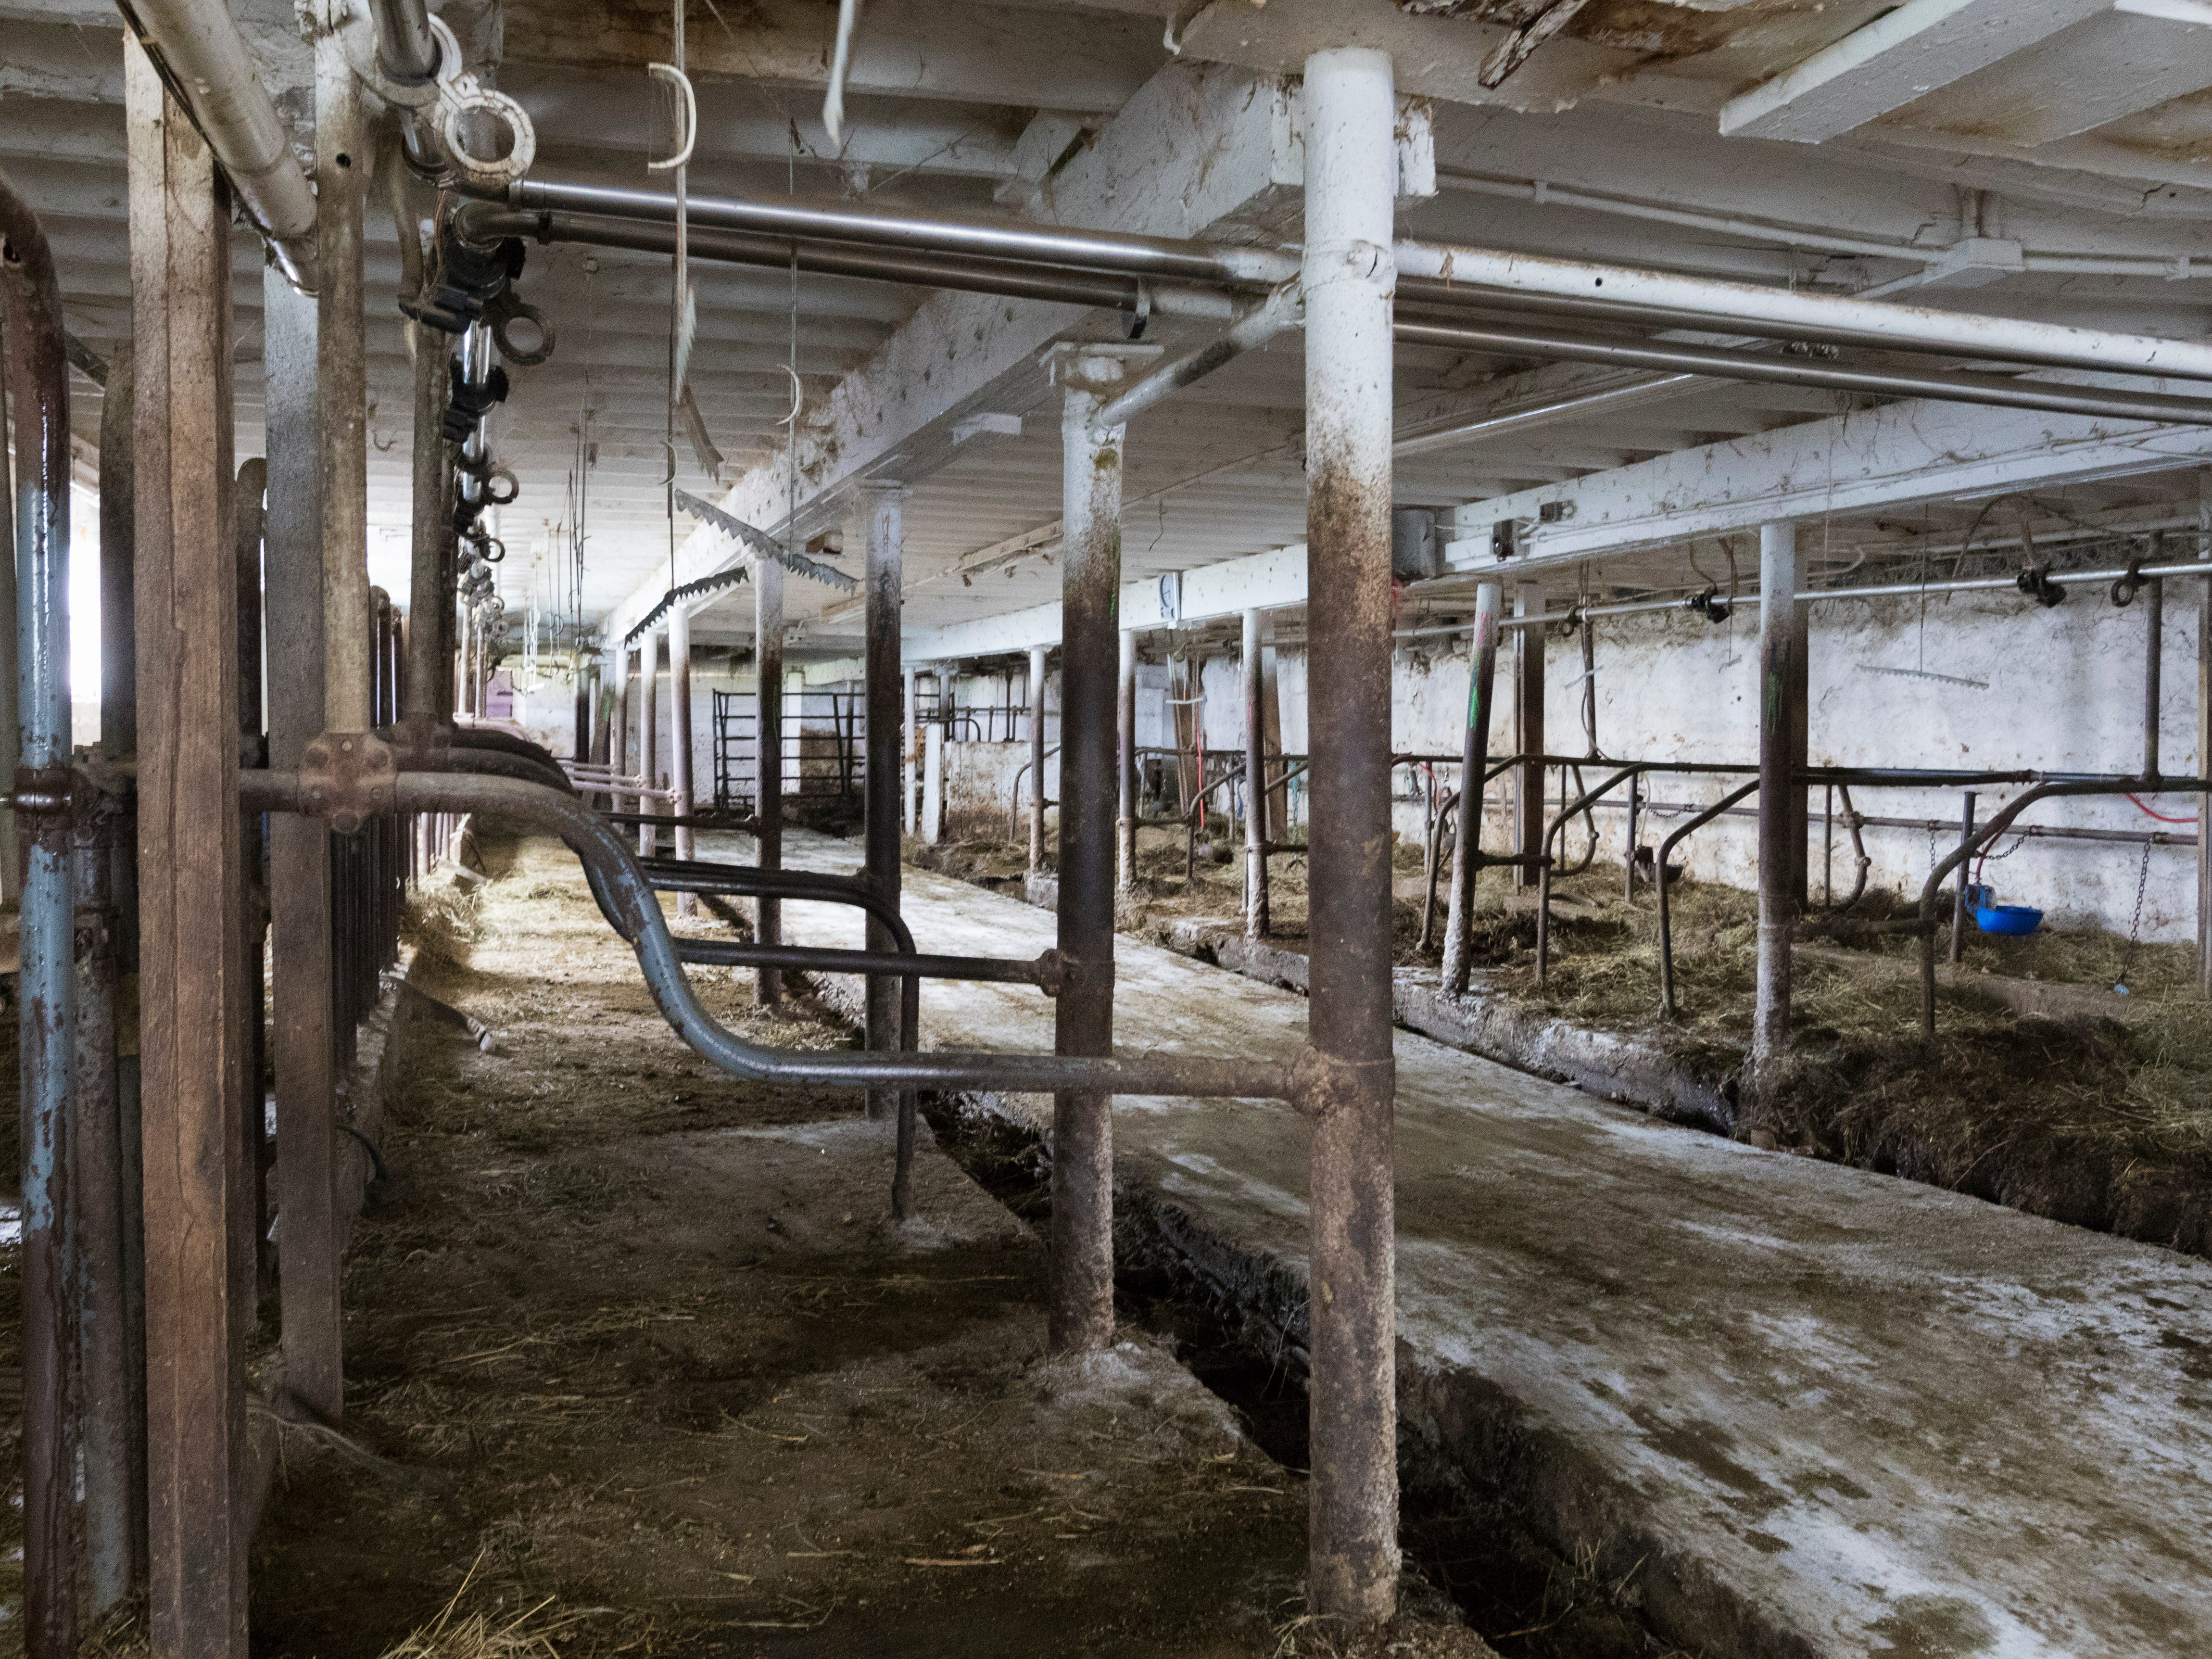 The barn is empty after the cows were loaded onto trailers.